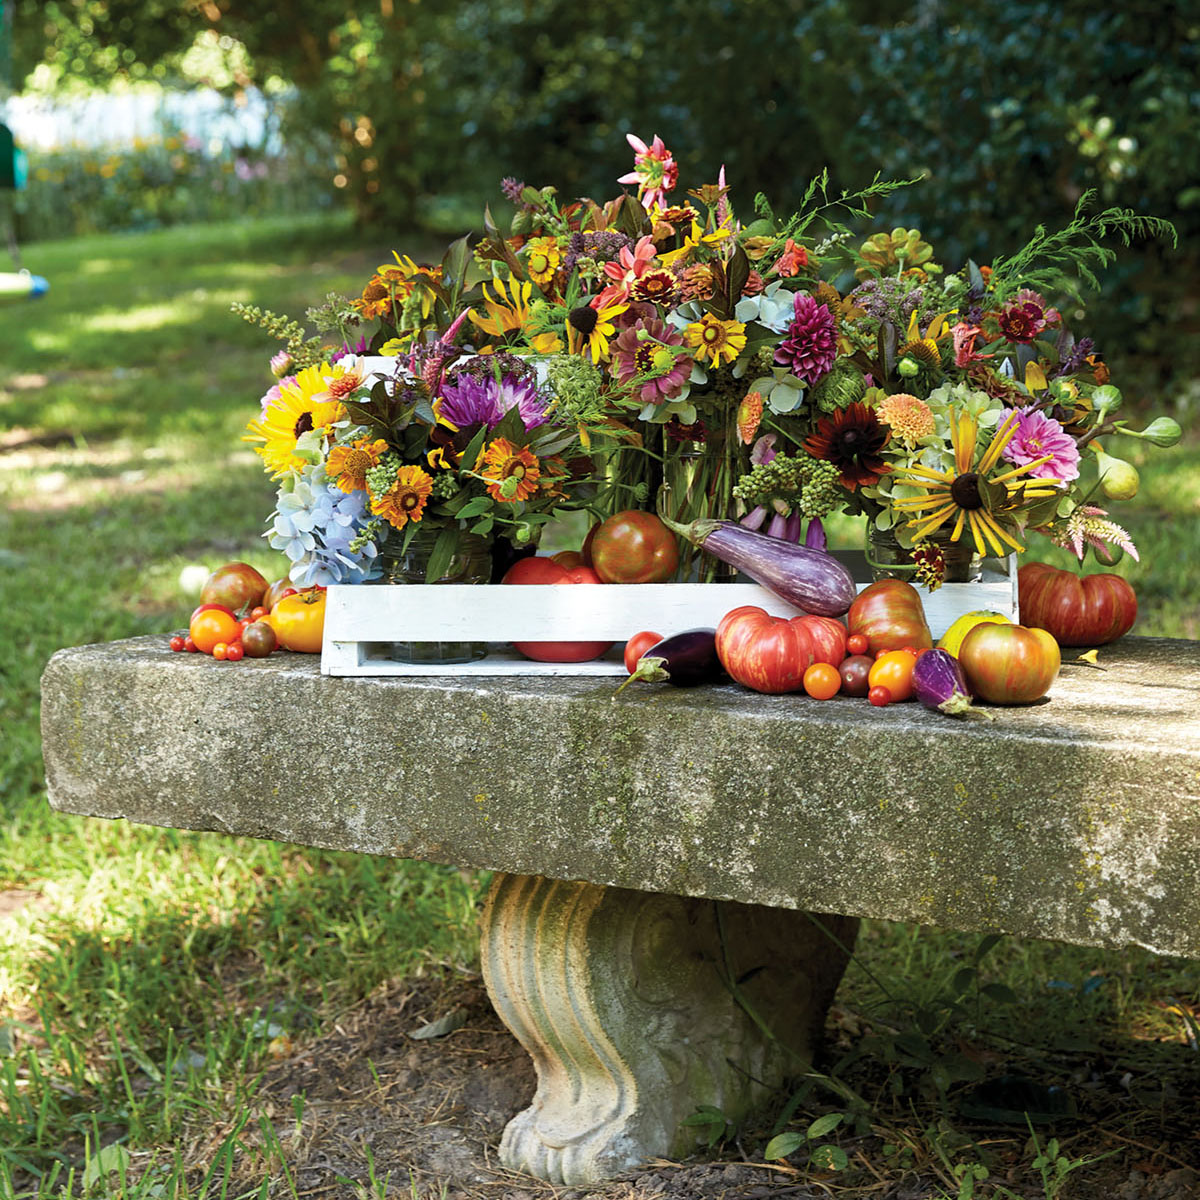 A summer arrangement by Birmingham, AL floral designer Kappi Naftel of Kap Flowers featuring individual bouquets in assorted glass containers, placed a white wooden handheld container and decorated with eggplants, tomatoes, and other summer vegetables. It is displayed on old concrete garden bench in a shady garden